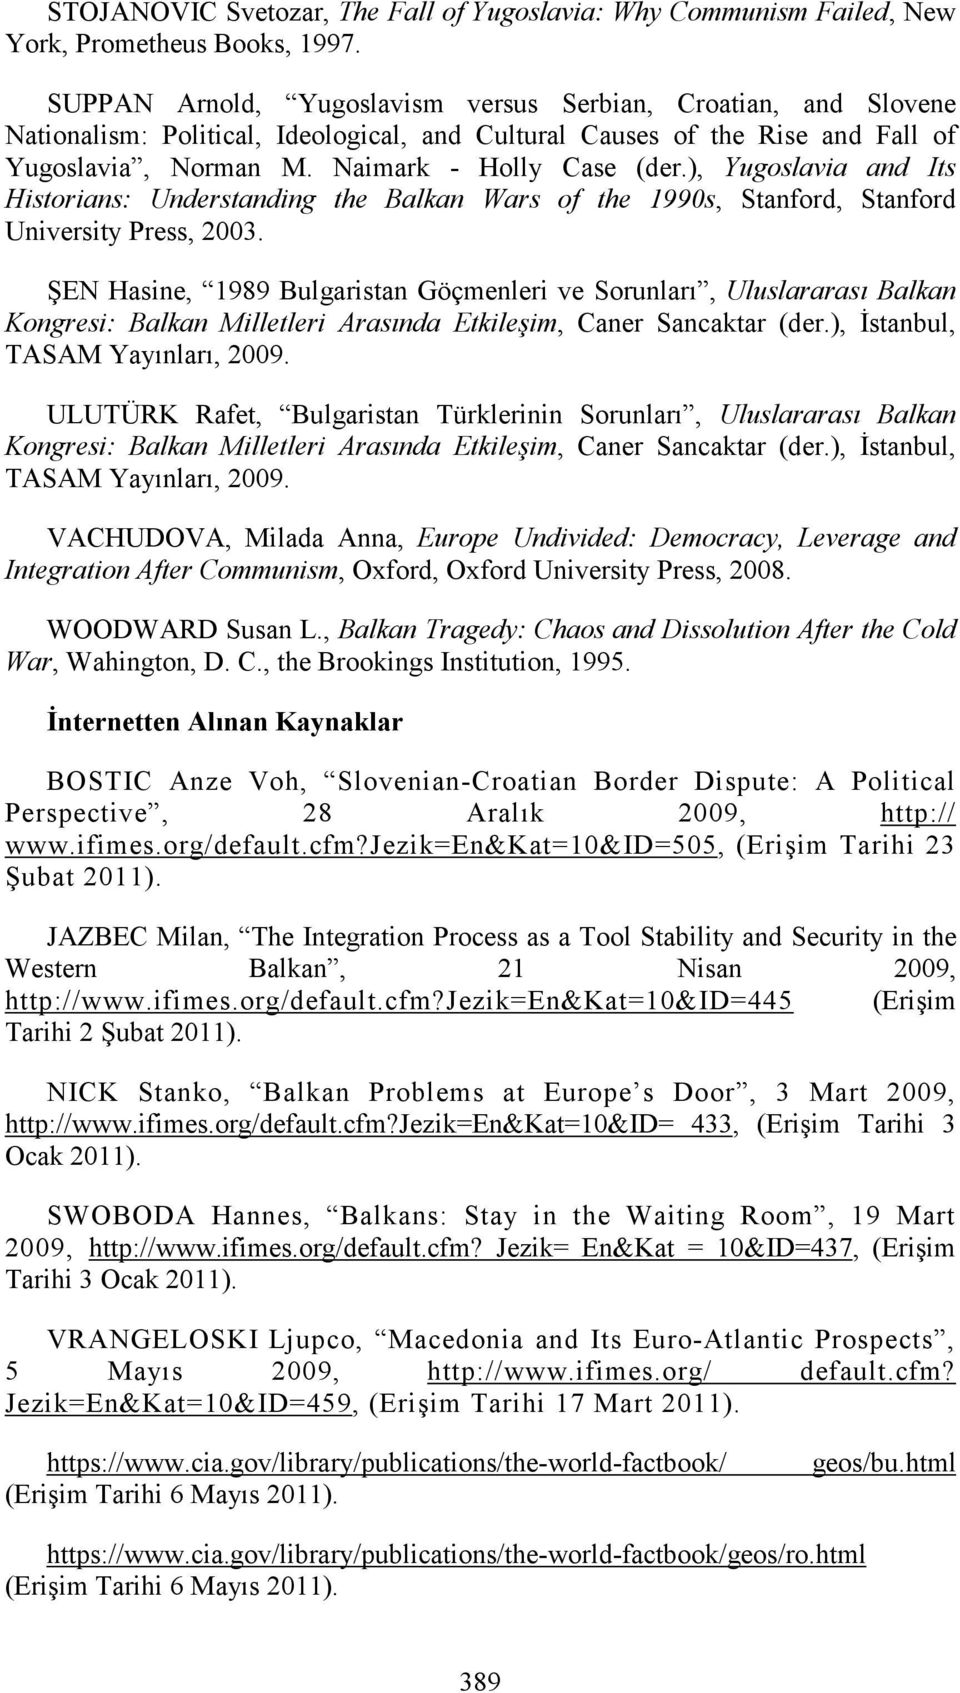 ), Yugoslavia and Its Historians: Understanding the Balkan Wars of the 1990s, Stanford, Stanford University Press, 2003.